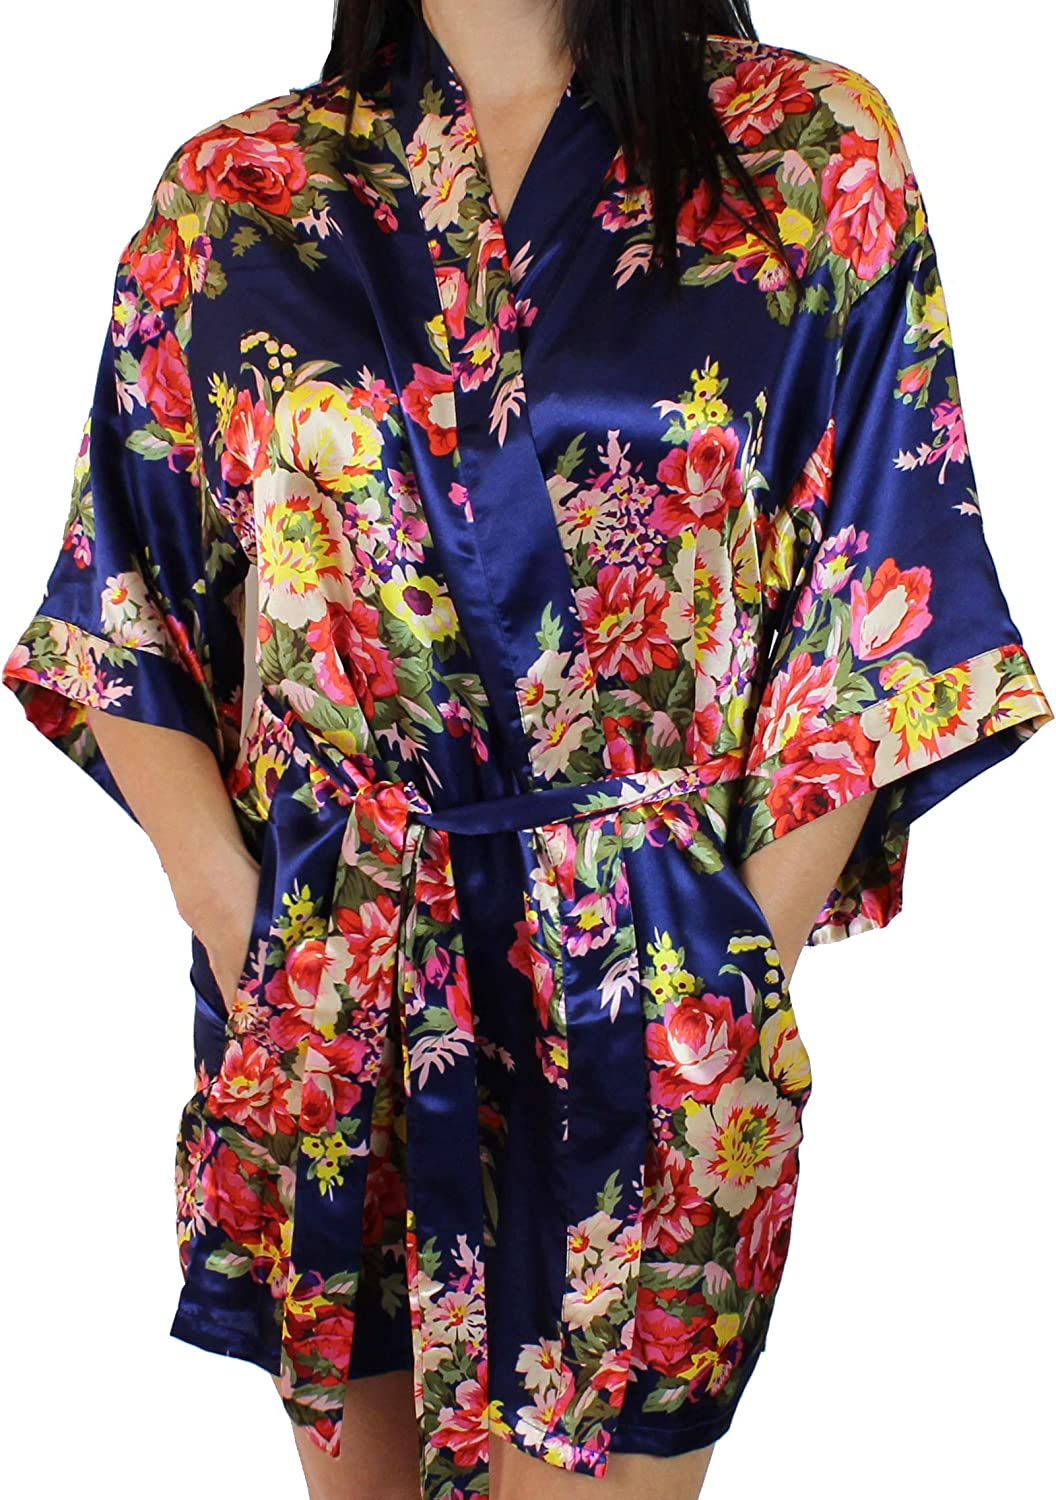 Silky Touch Womens Floral Satin Kimono Short Bridesmaid Robe with Pockets